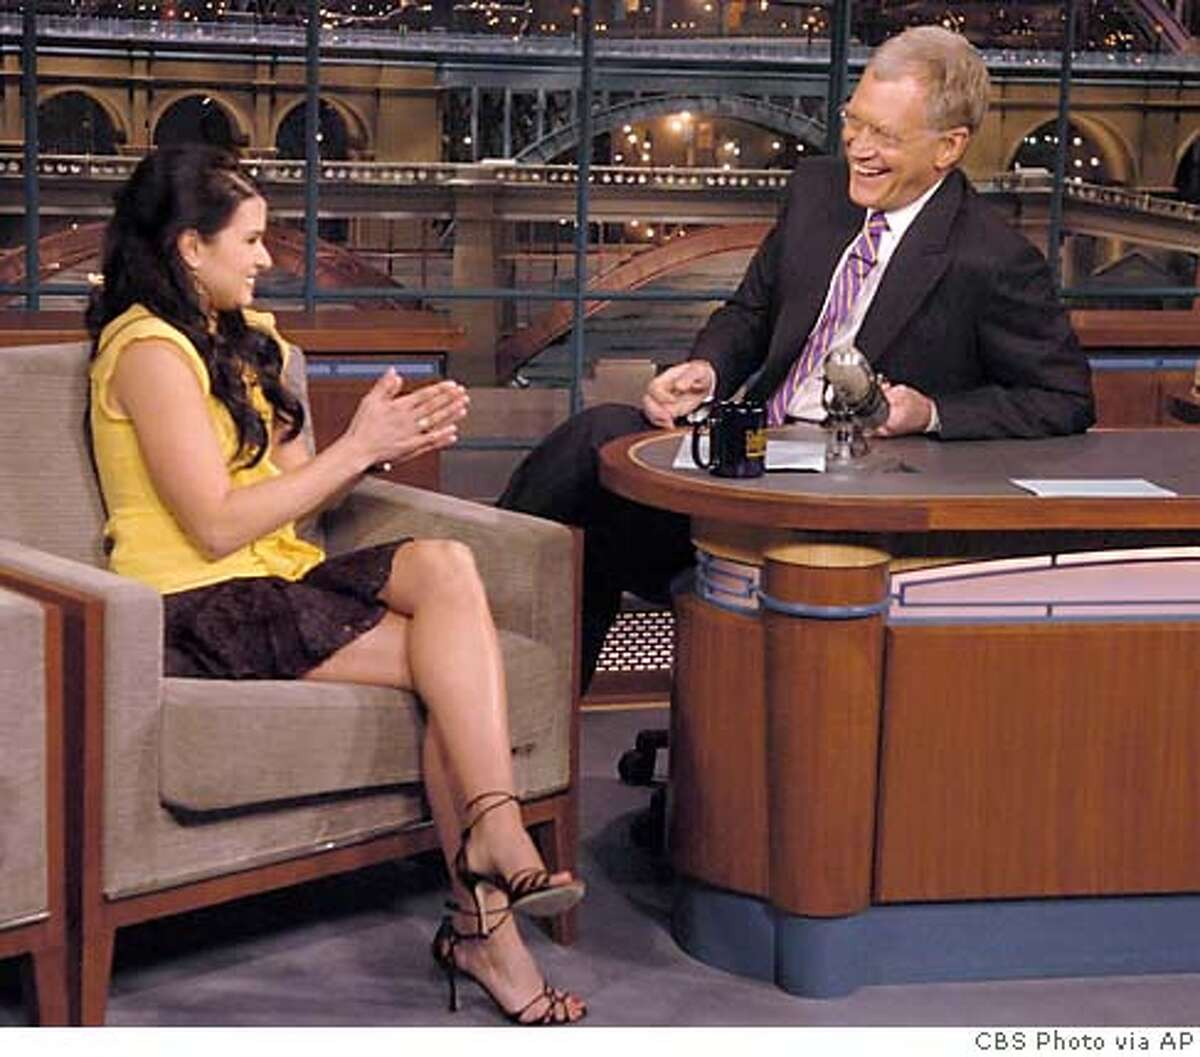 Indy Racing League rookie driver Danica Patrick, of Roscoe, Ill., talks with CBS Late Show Host David Letterman in New York Monday, May 23, 2005. Patrick will be driving for the Rahal-Letterman team at the Indianapolis 500 on Memorial Day. (AP Photo/CBS, J.P. Filo)